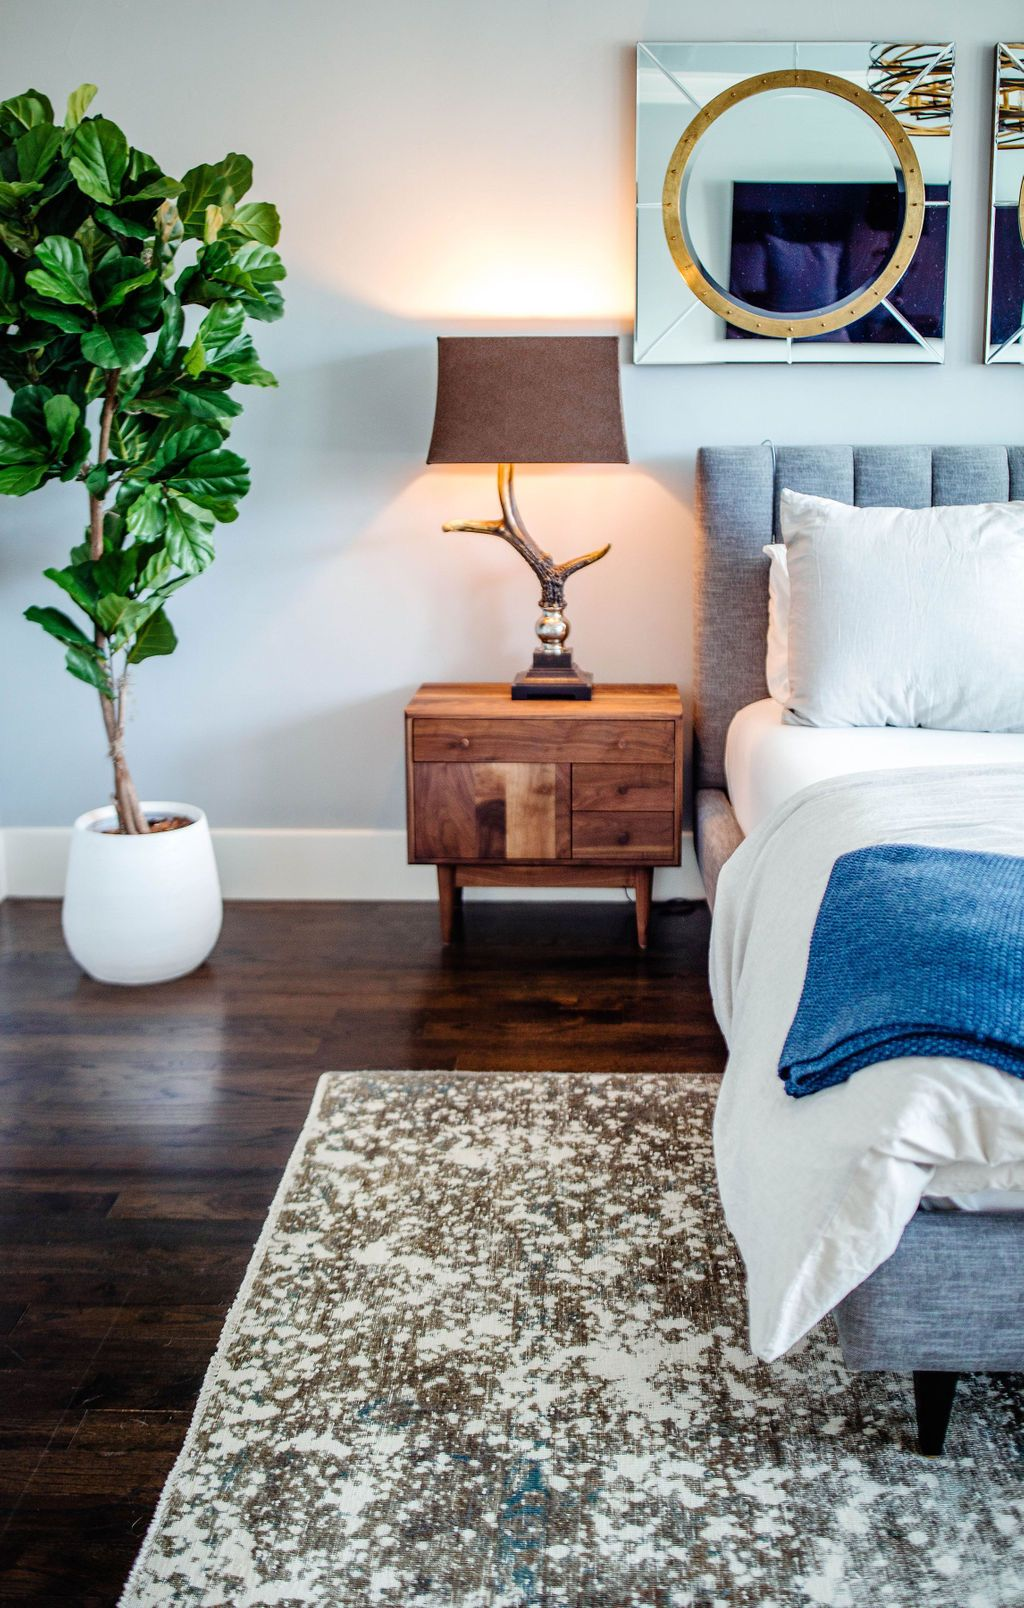 Master bedroom with wood floors, blue throw blanket and